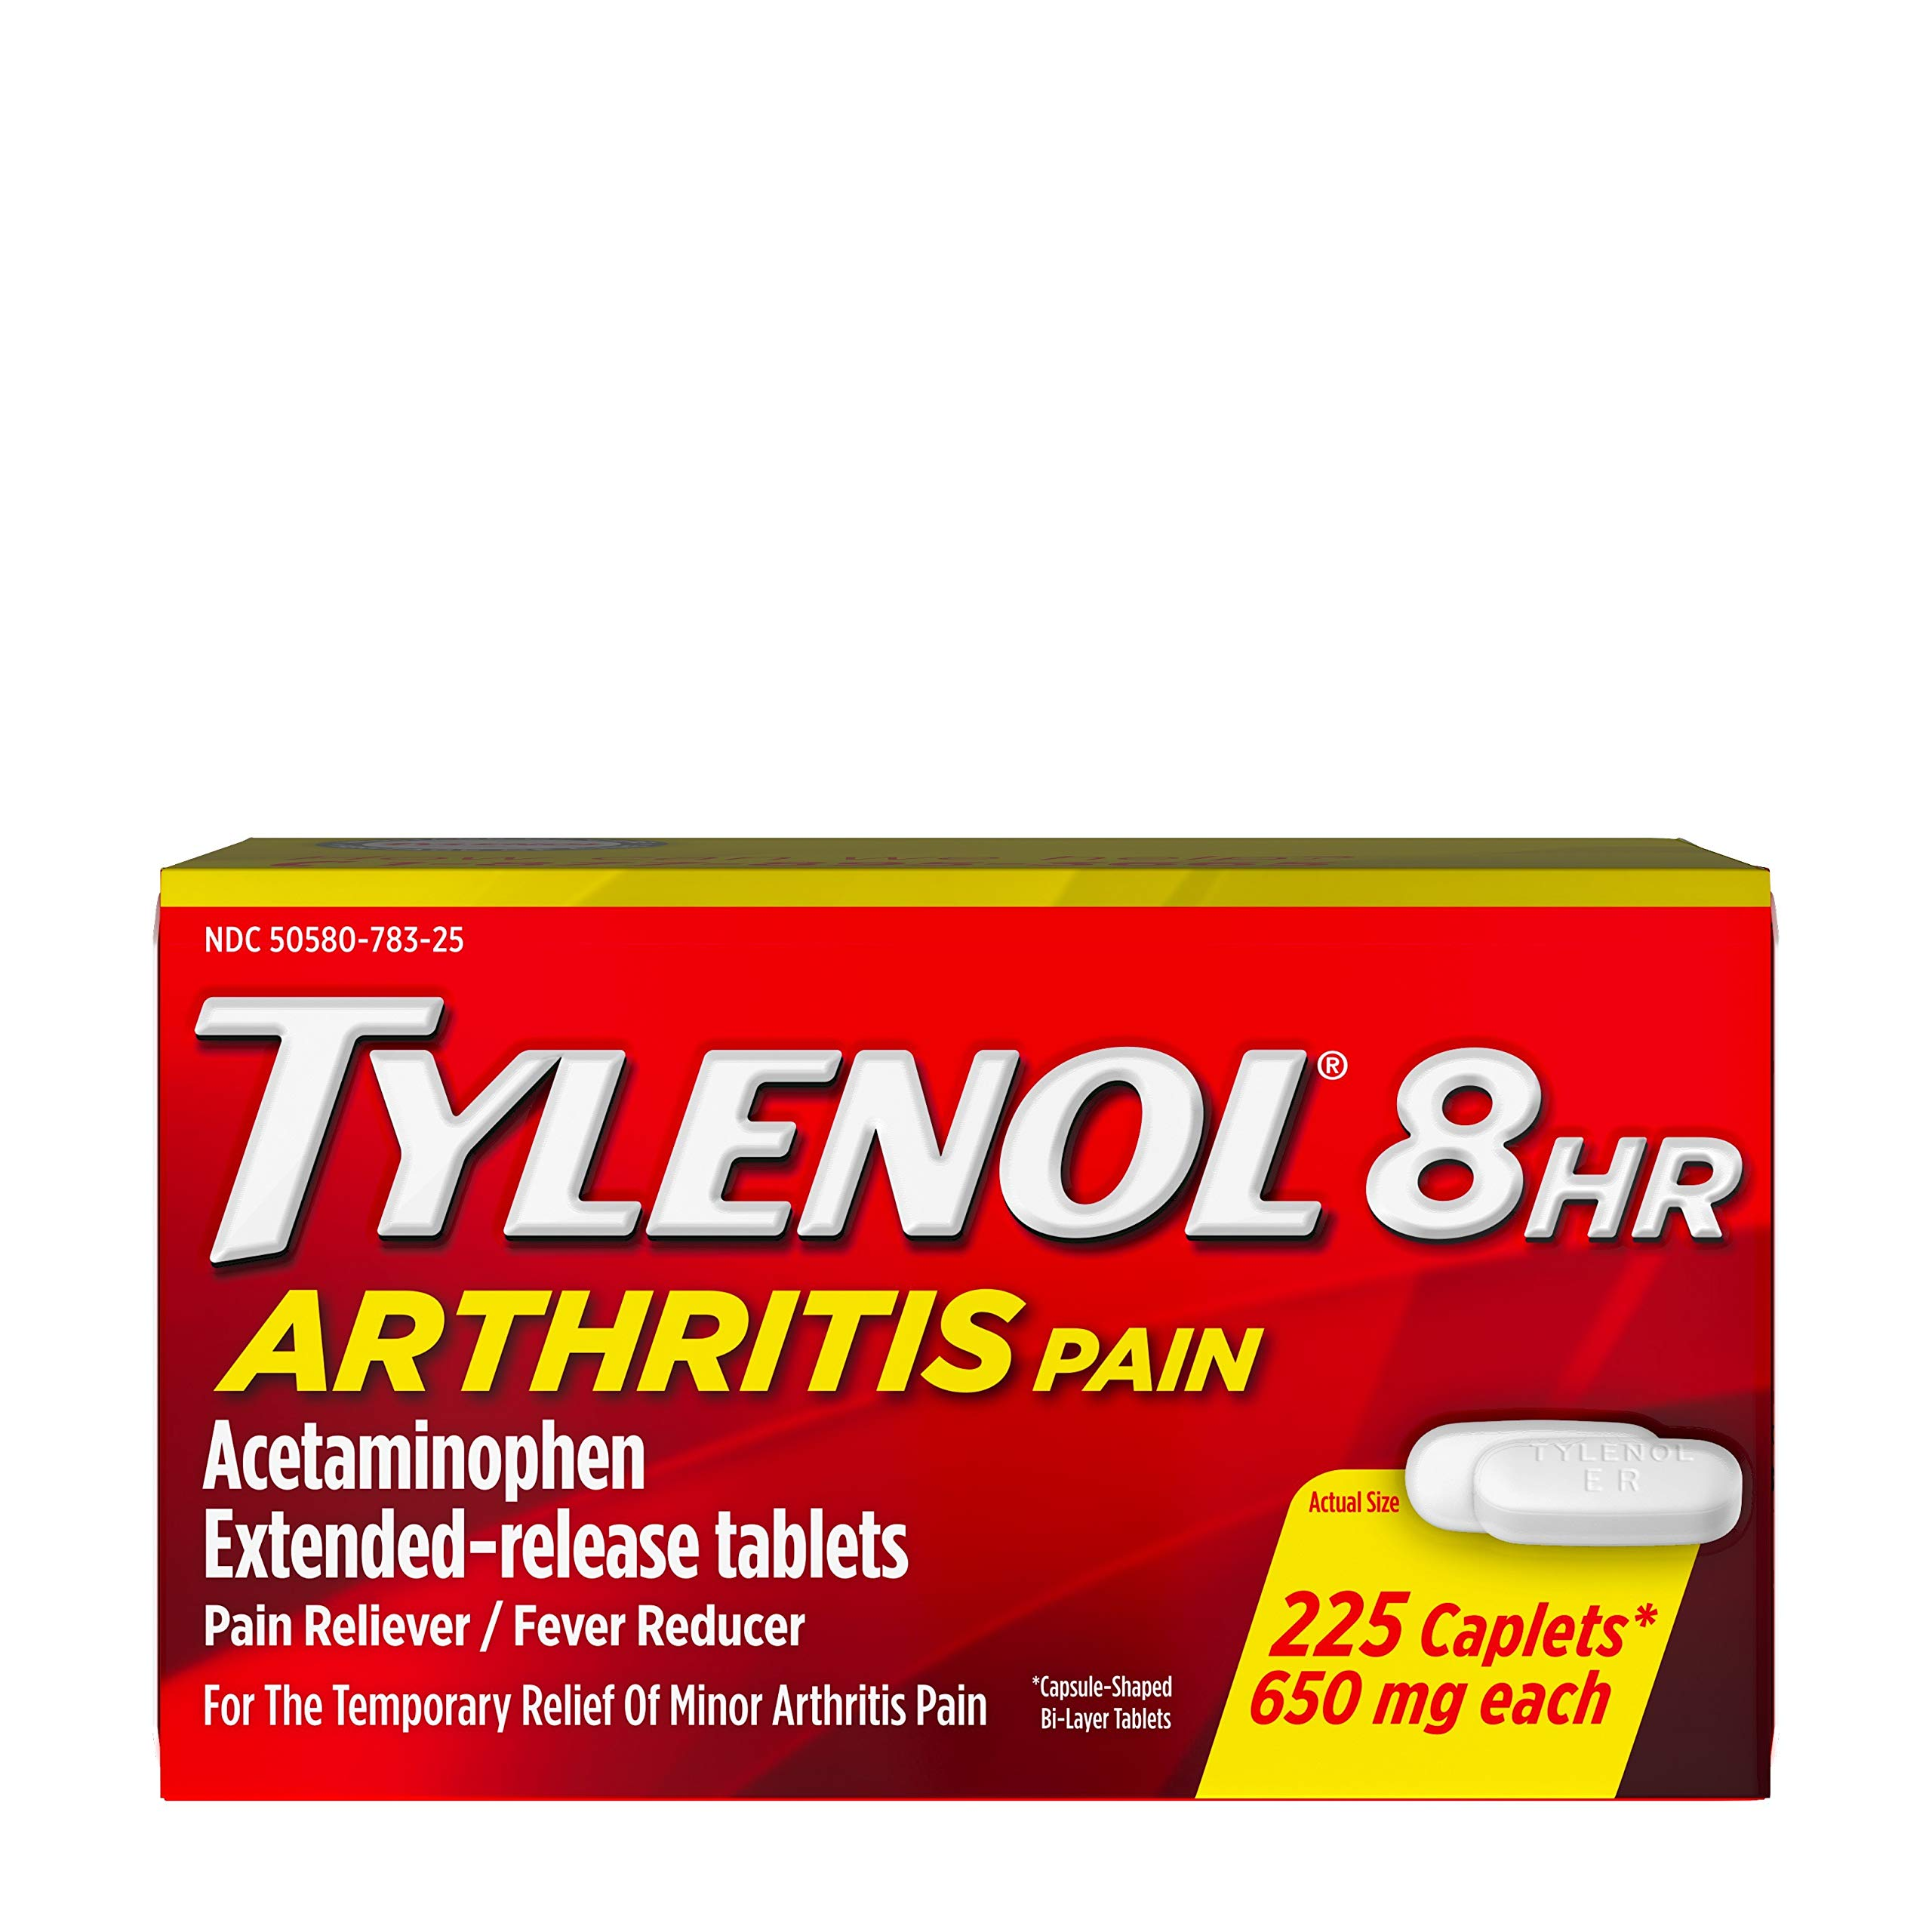 Tylenol 8 HR Arthritis Pain Extended Release Caplets, Pain Reliever, 650 Mg, 225 Ct. by Tylenol